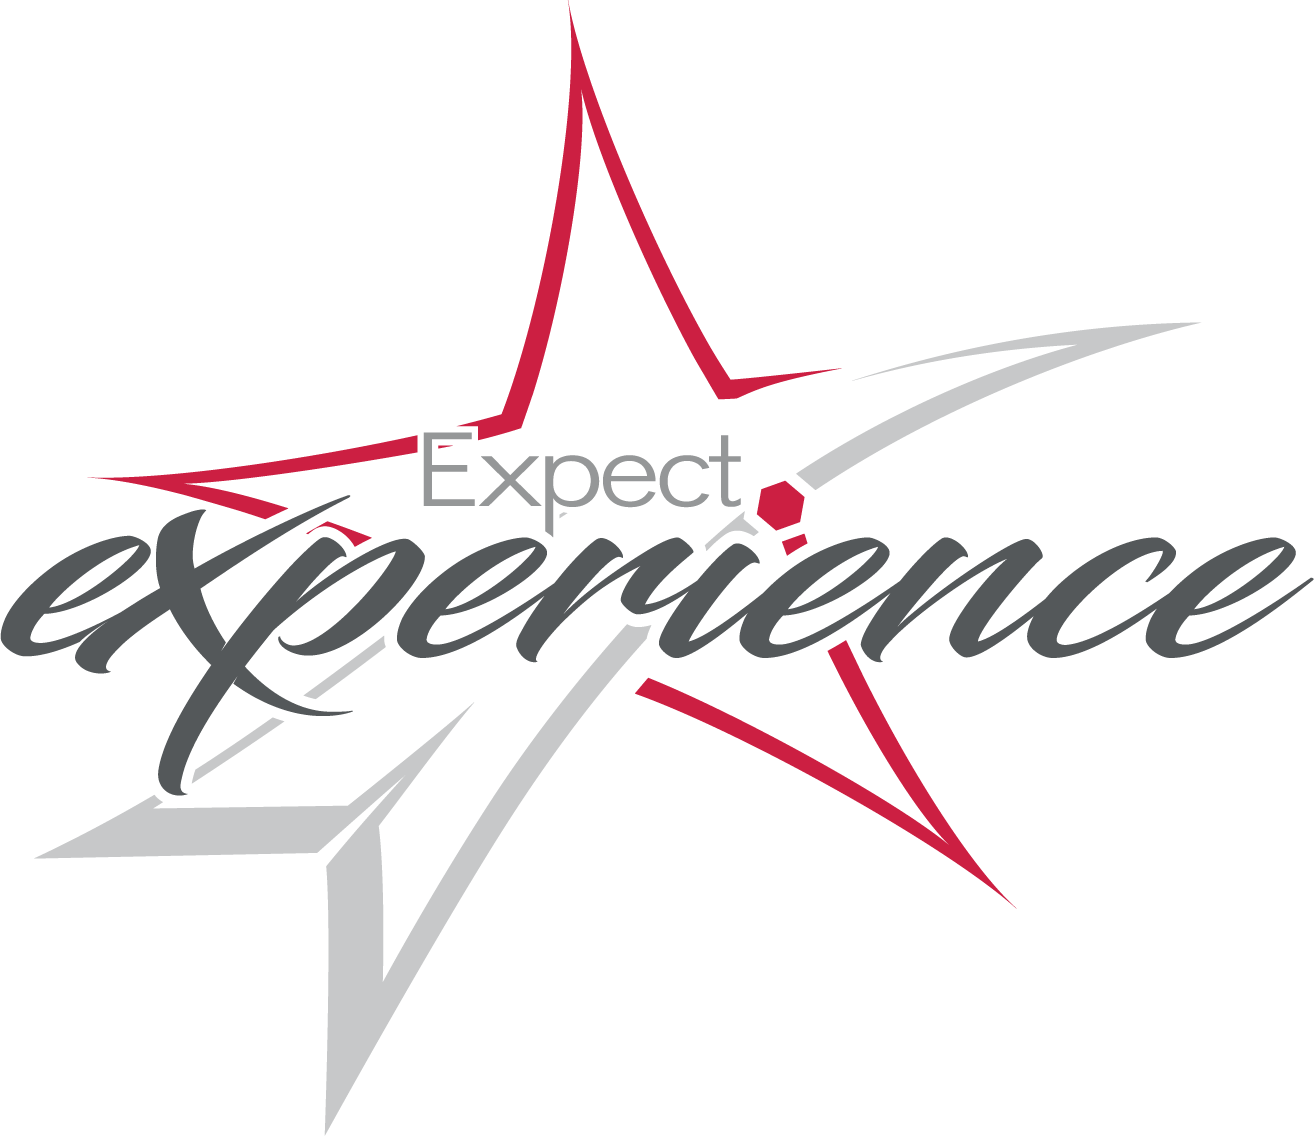 Expect.experience